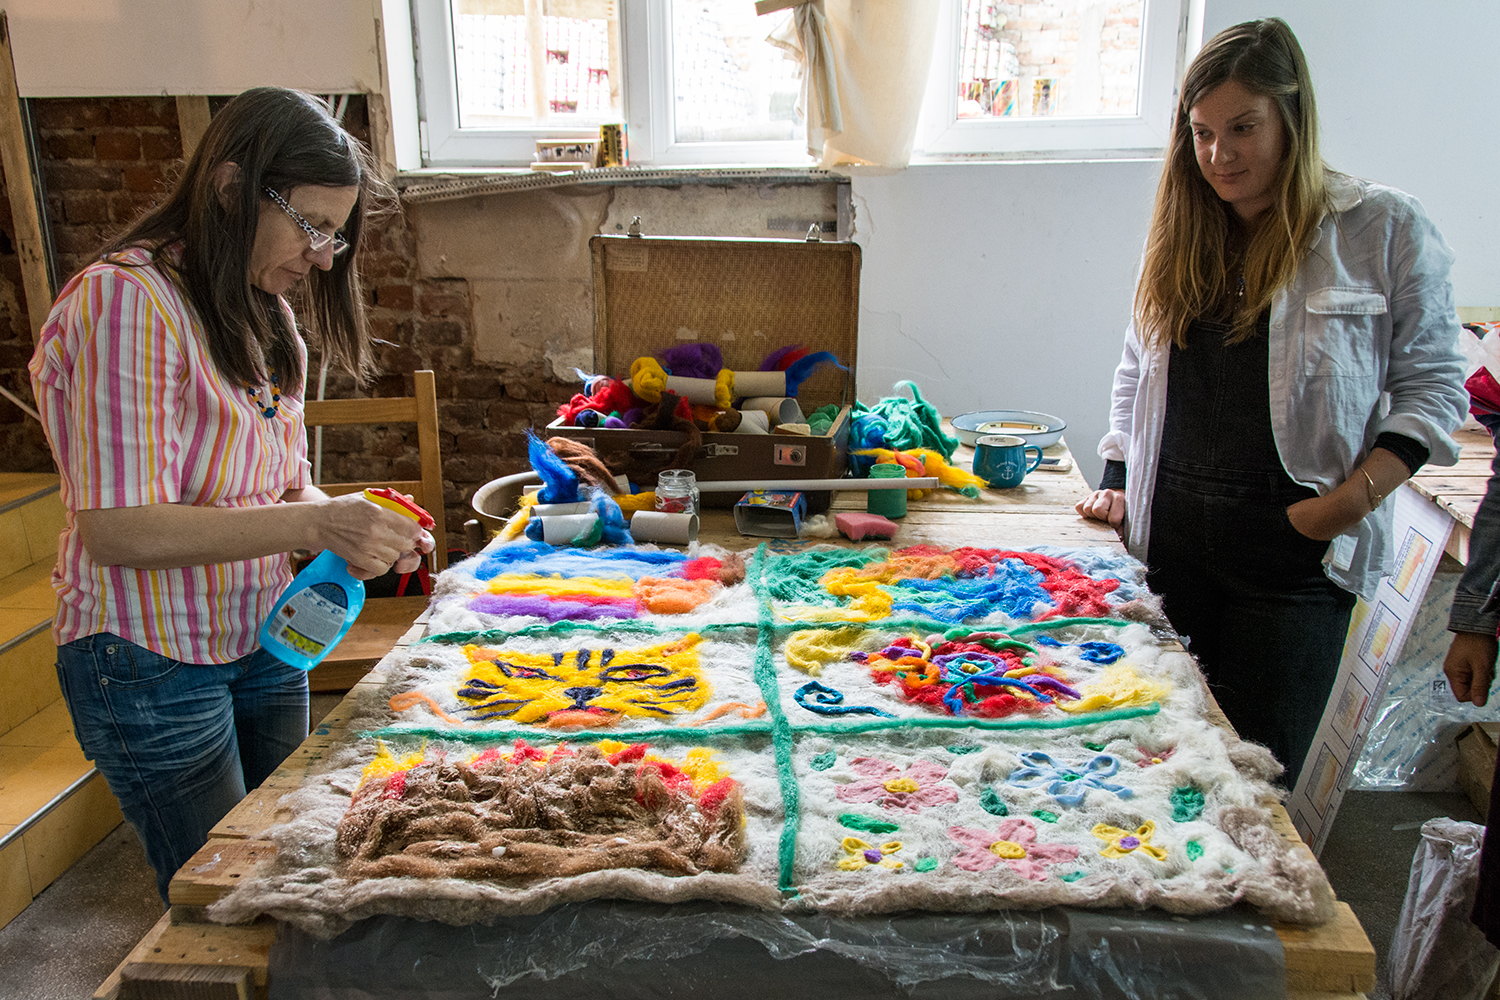 Felt-making workshop with Marieta Nedkova